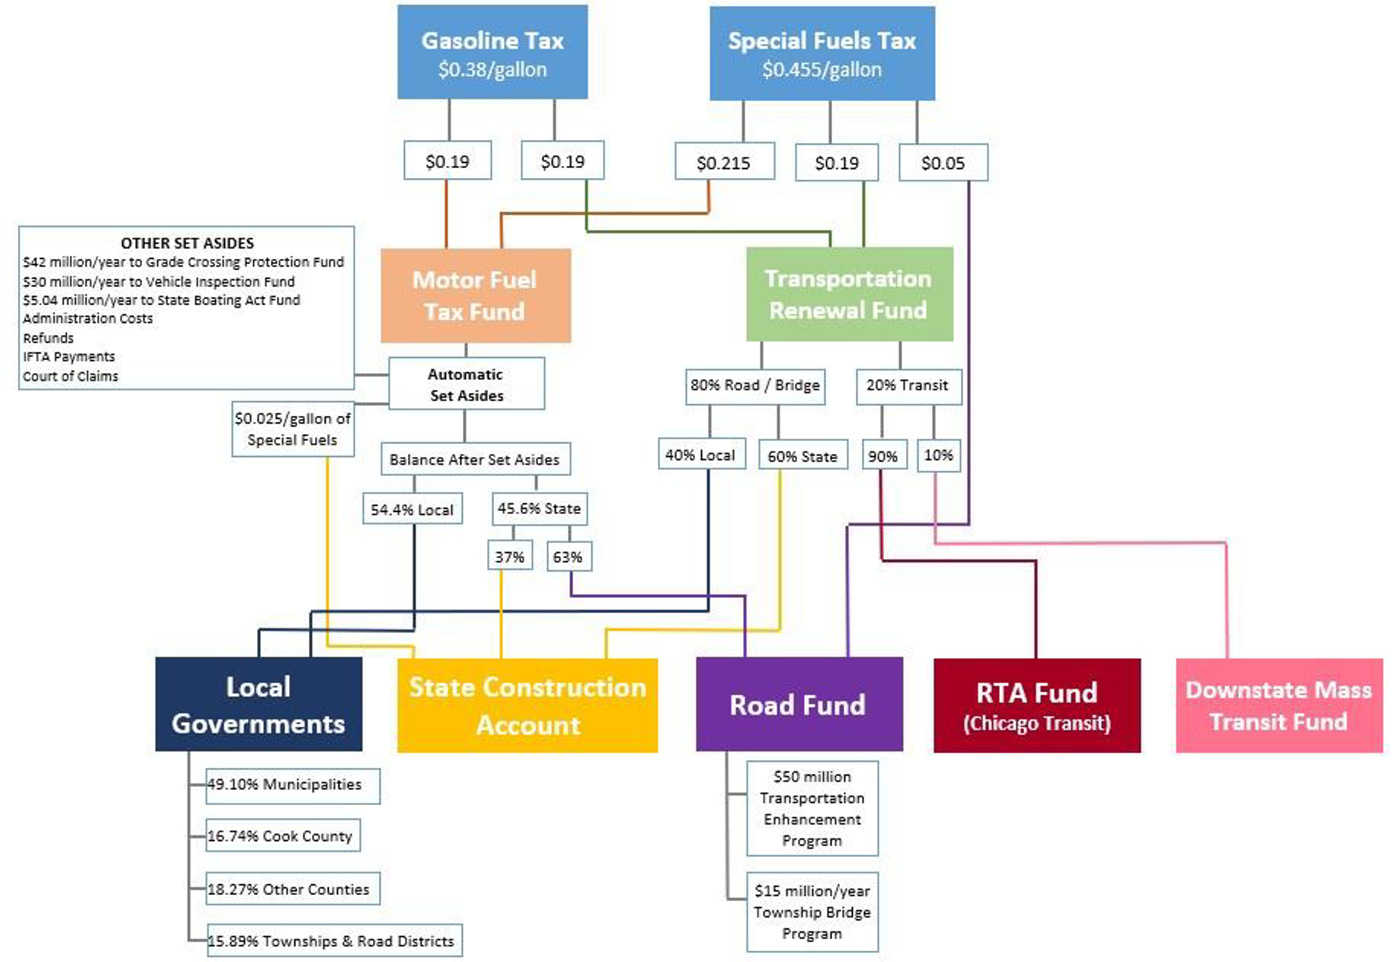 Roadmap of Gasoline and Special Fuels Taxes